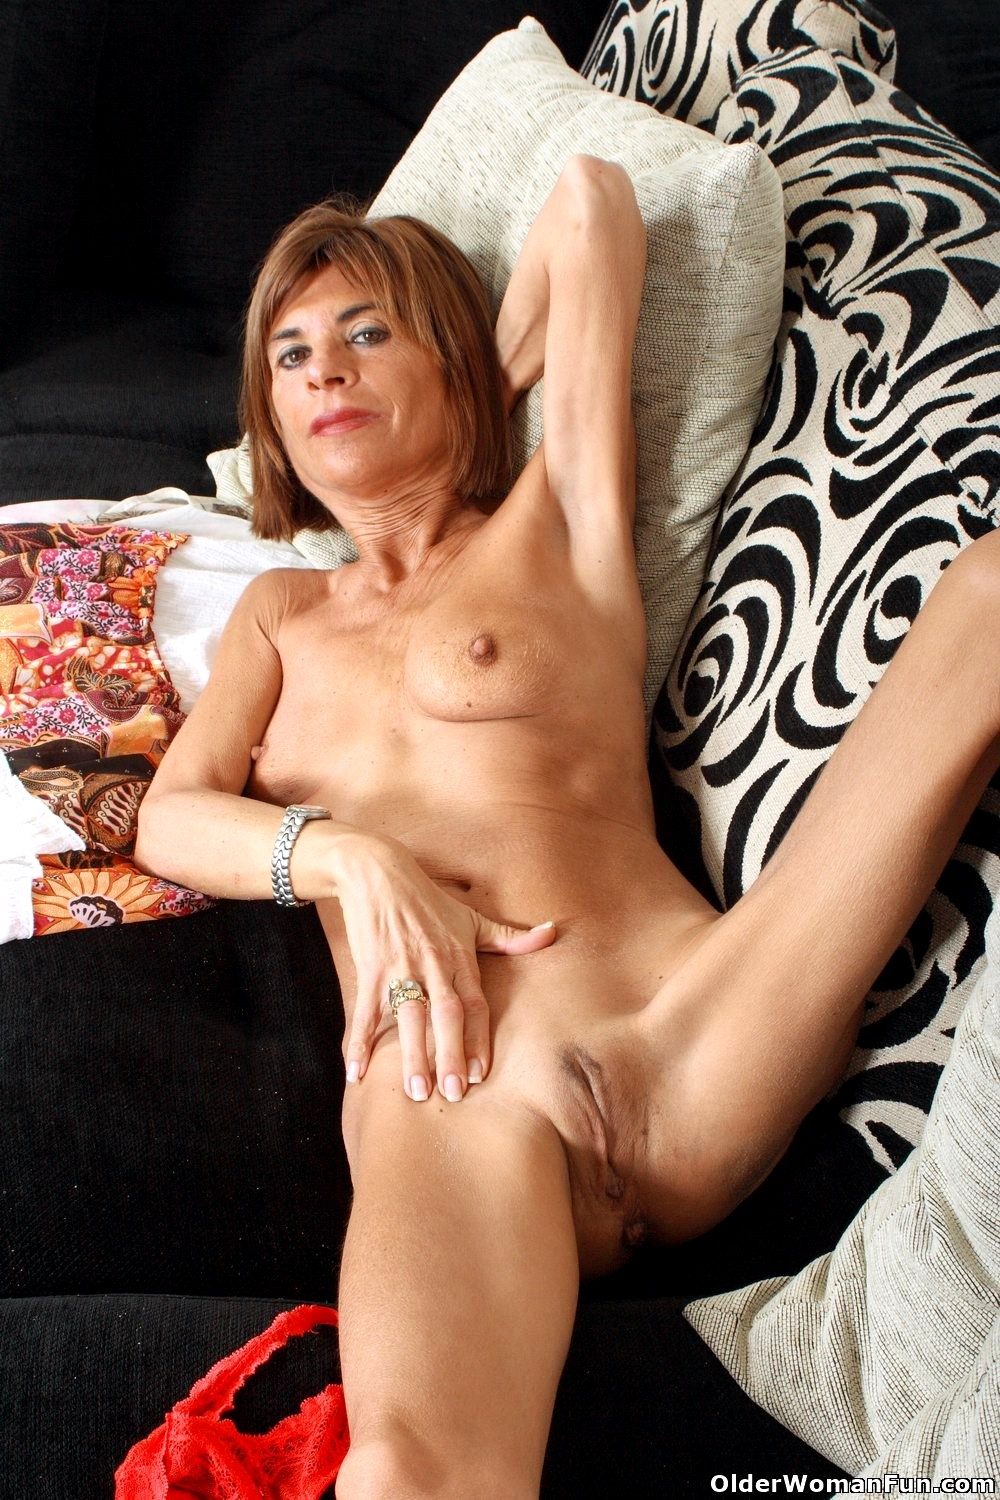 Teen innocent anal porn pictures